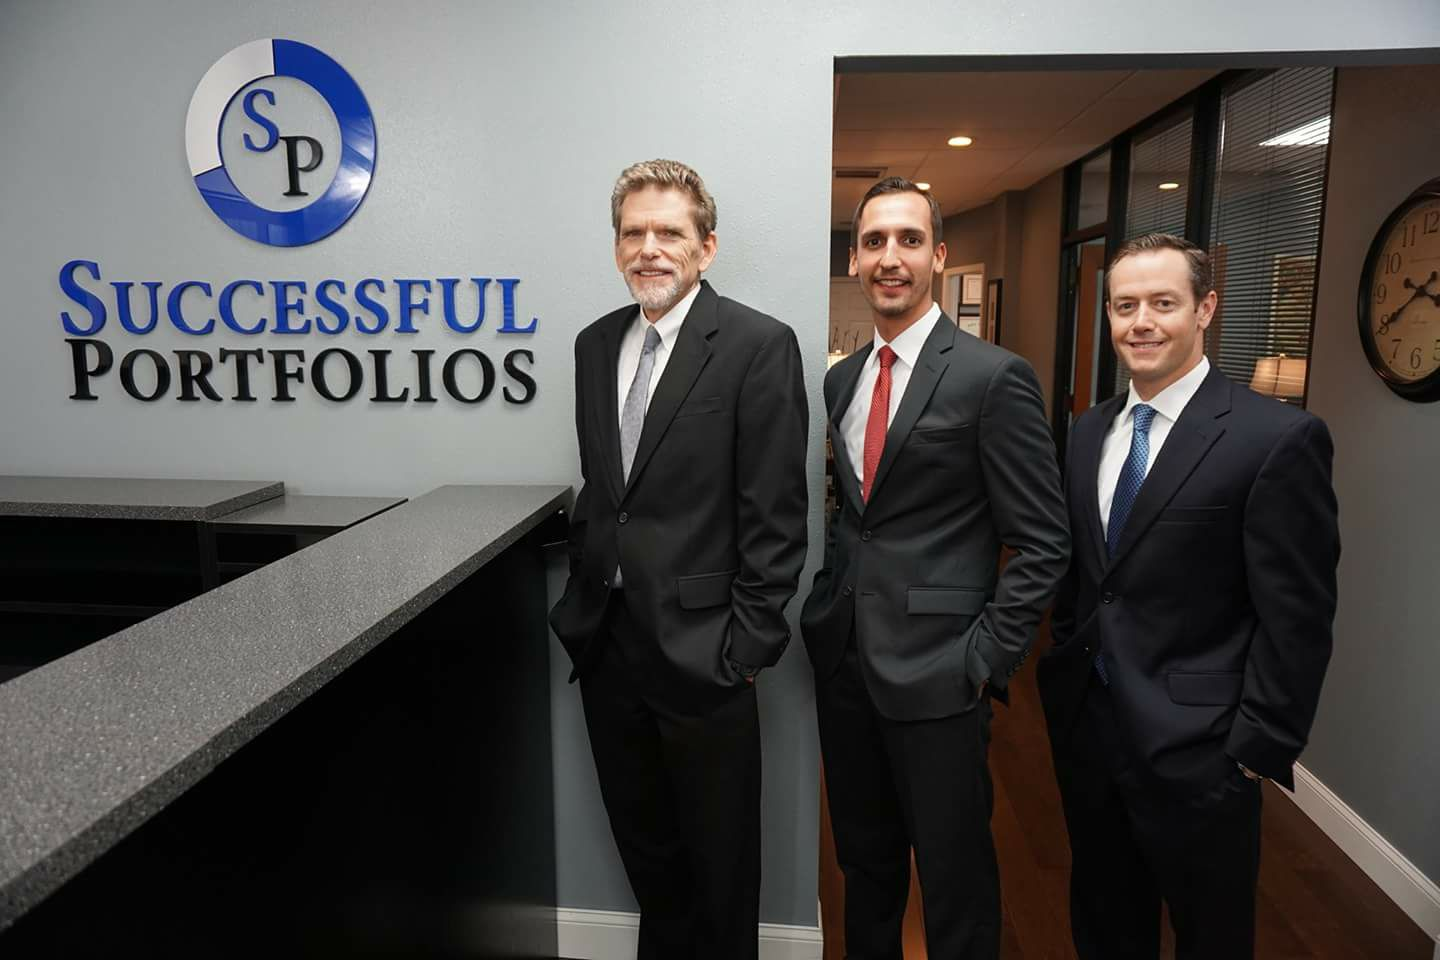 Parker Evans, CFA, CFP | Joe Baer, APMA | David Bennett, CFA, CFP | Successful Portfolios LLC | Investment Advisors